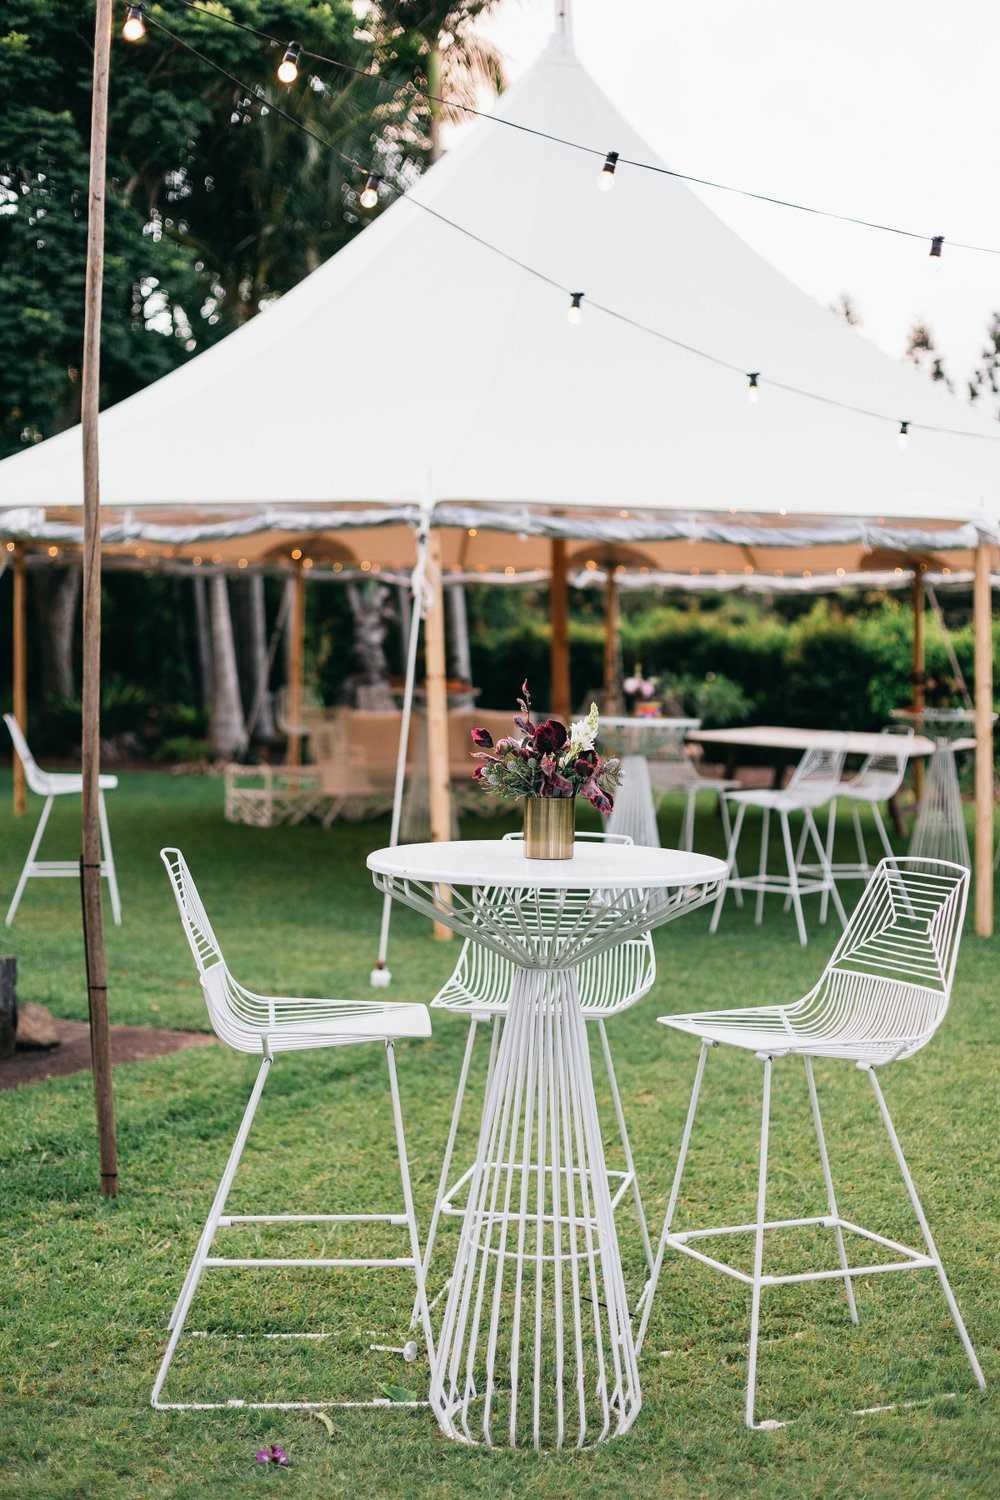 Cocktail Wedding Furniture Hire Gold Coast Wedding and Event Hire7.jpg